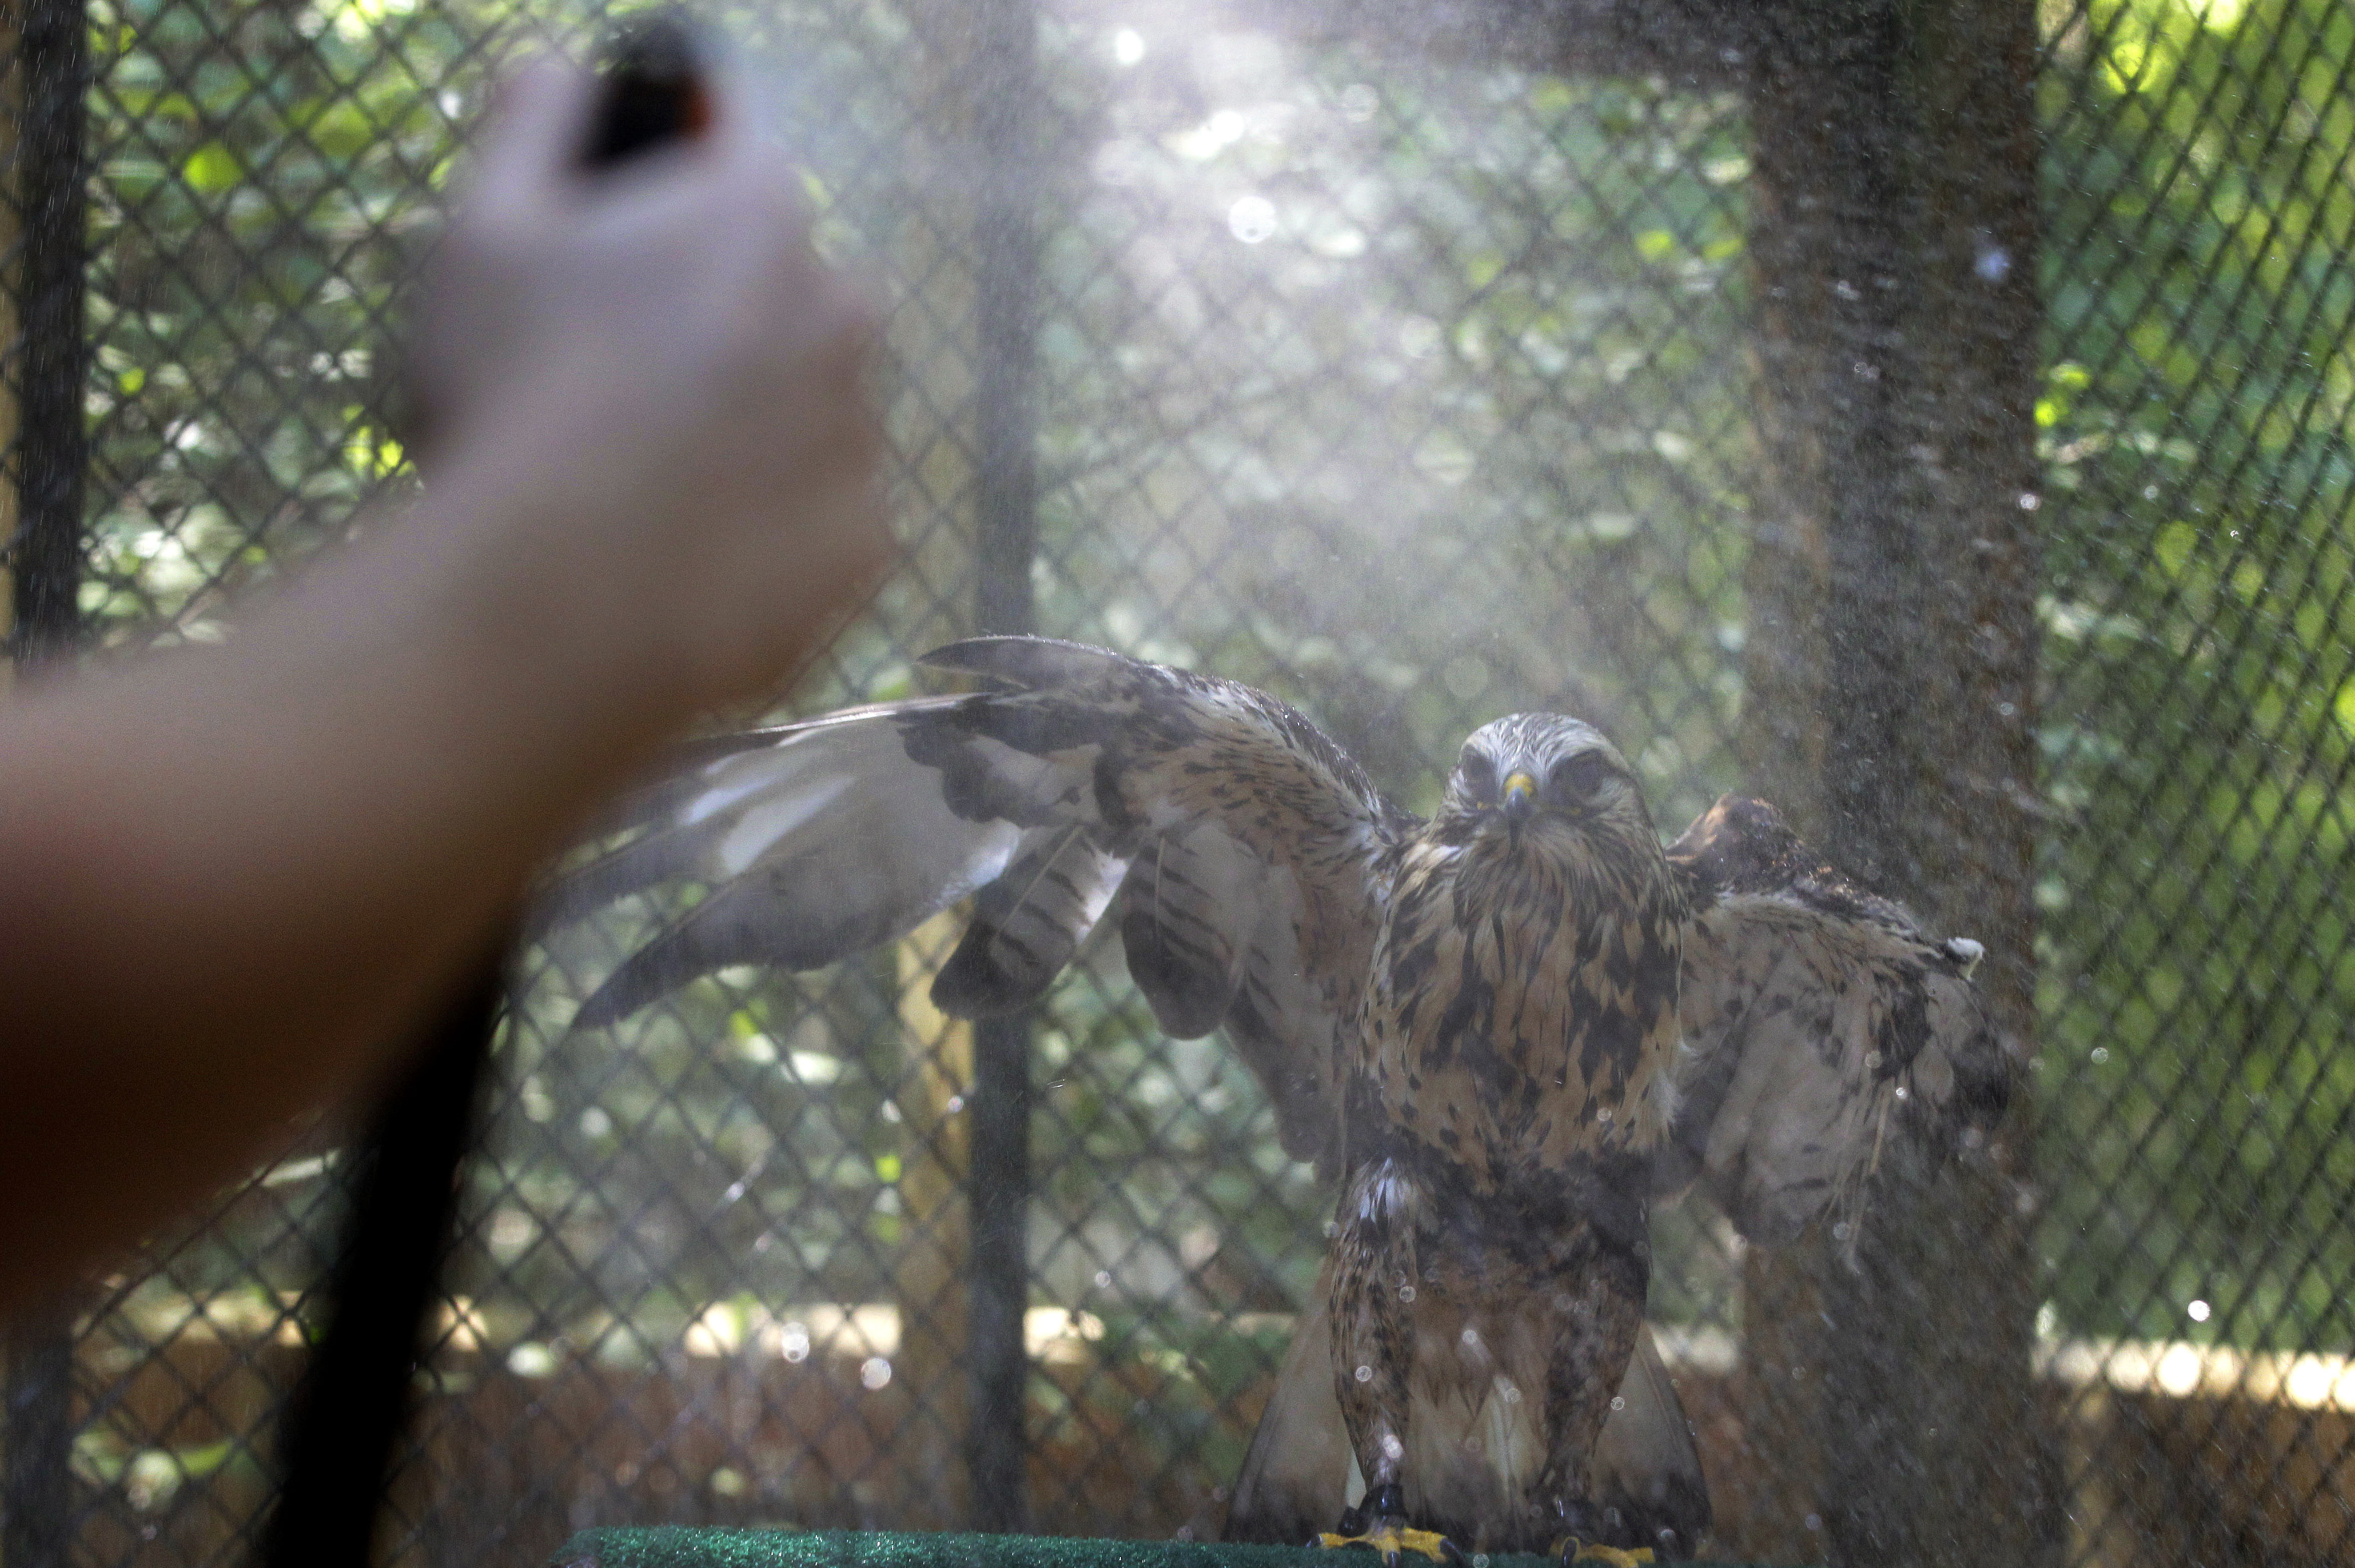 Aletta, a rough-legged hawk, flaps her wings as she gets a cooling shower from a hose at the Carolina Raptor Center in Charlotte, N.C., on Friday.